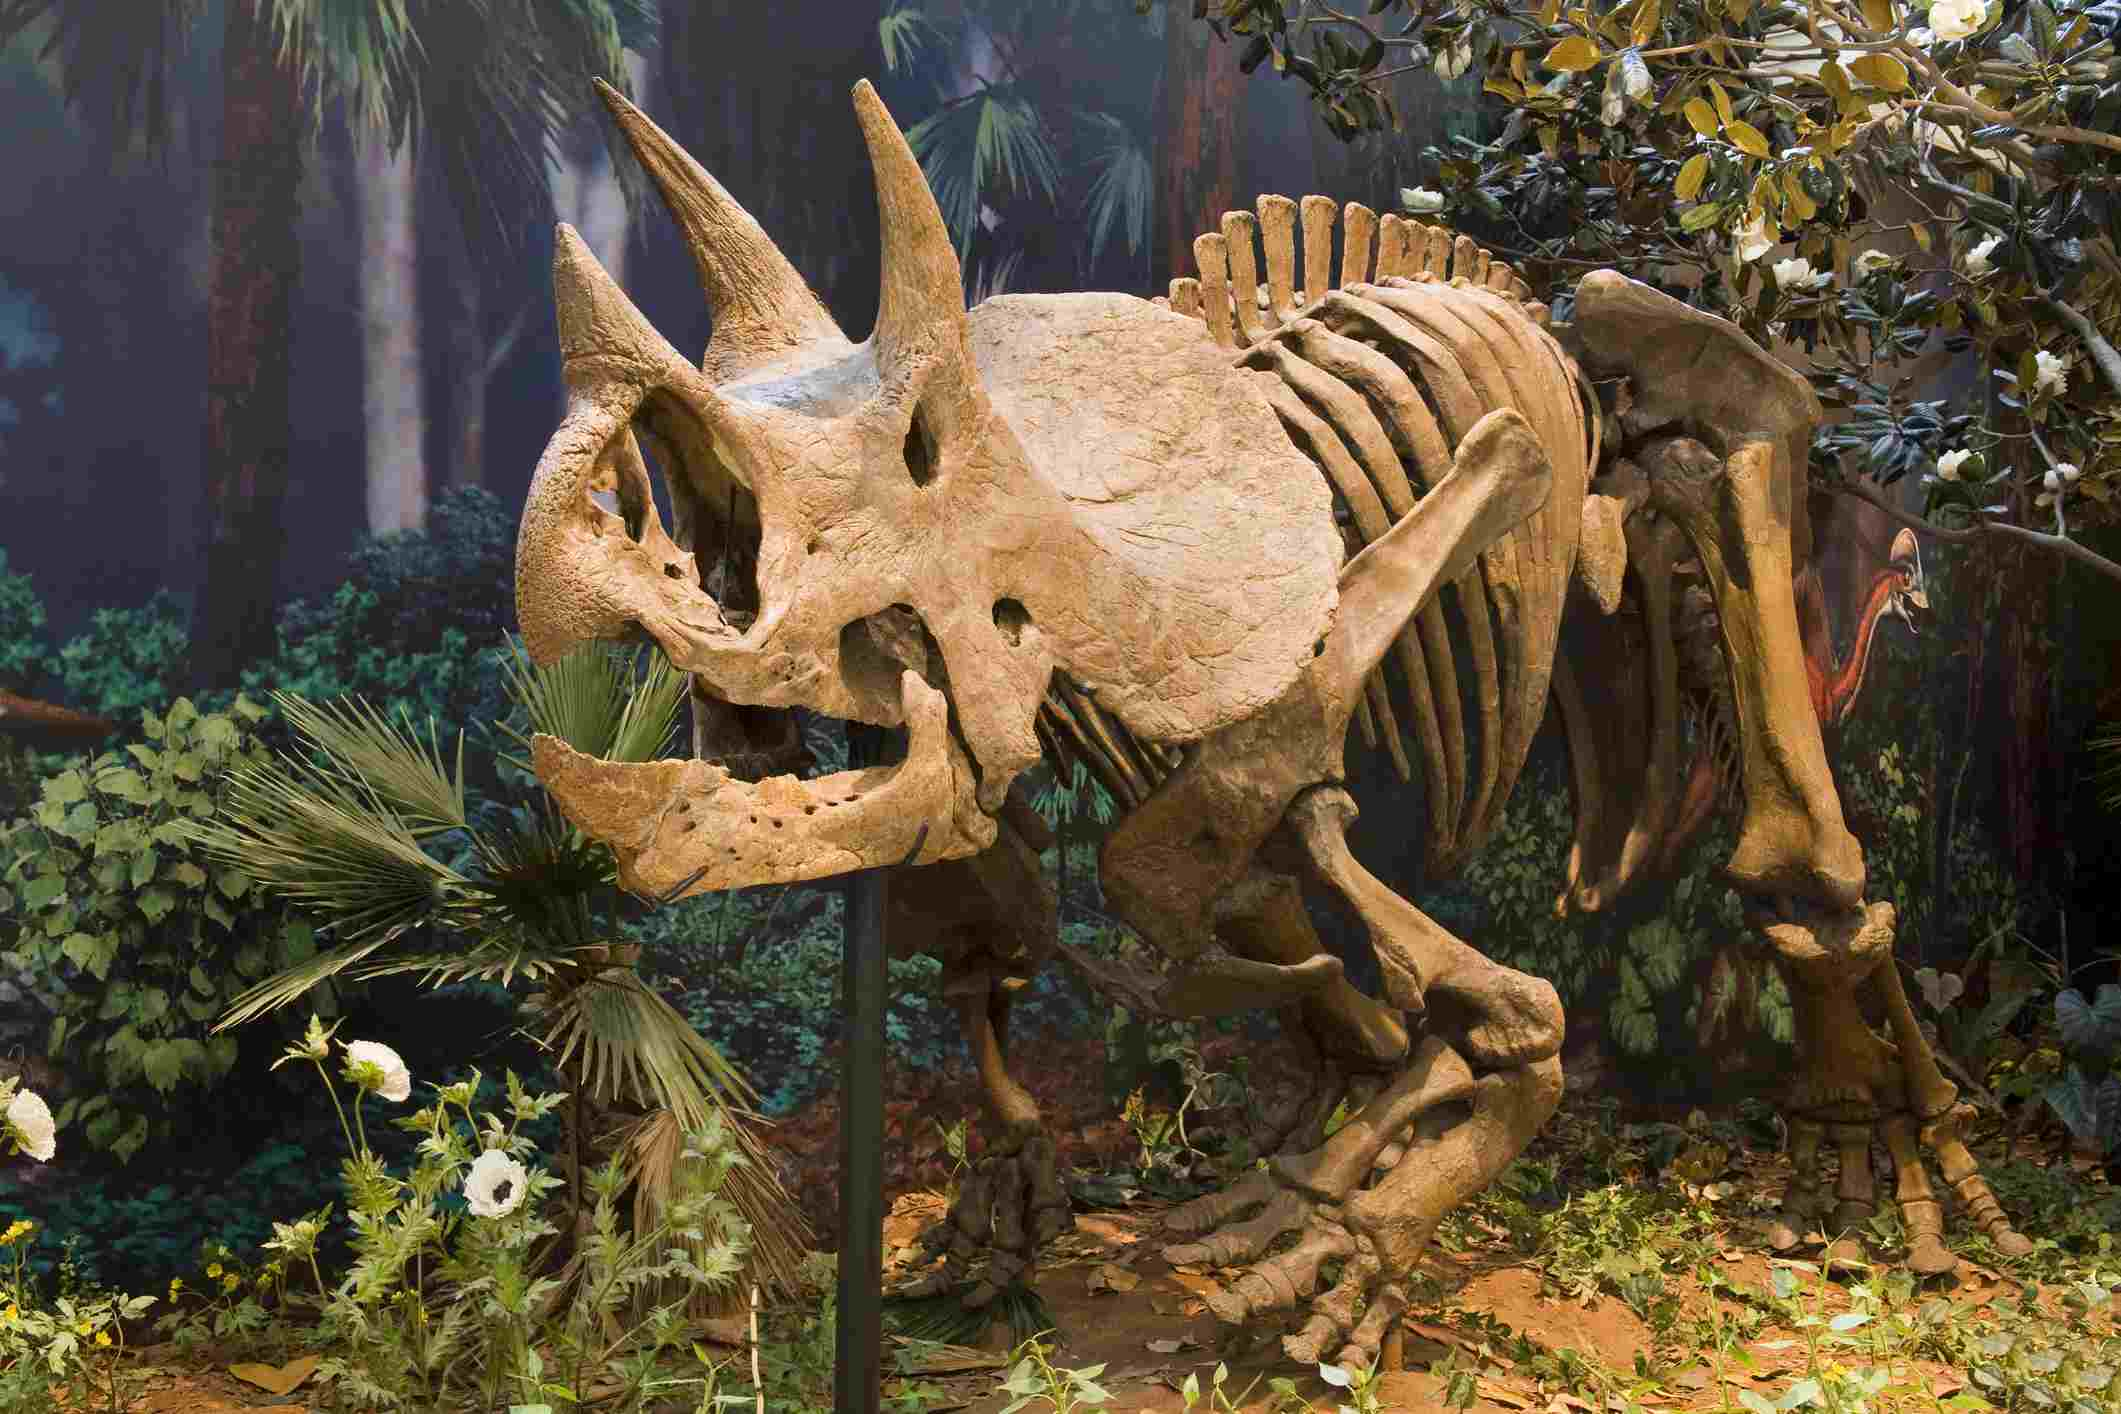 Triceratops skeleton displayed at the Carnegie Museum of Natural History in Pittsburgh, Pennsylvania